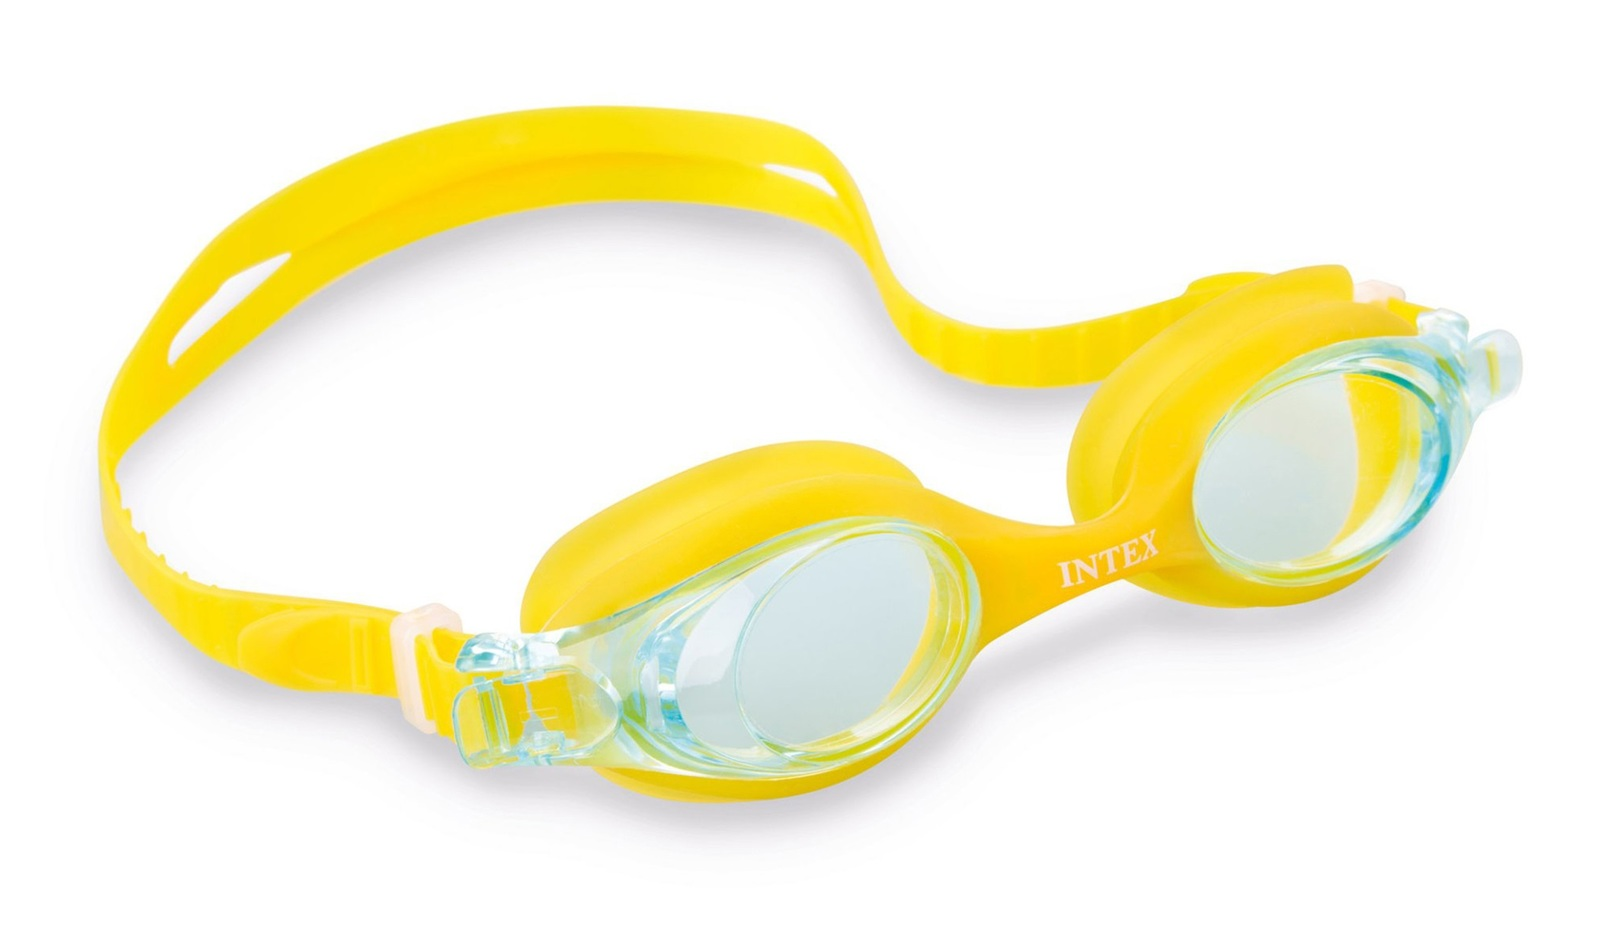 Intex: Pro Team Goggles - (Assorted Colours) image